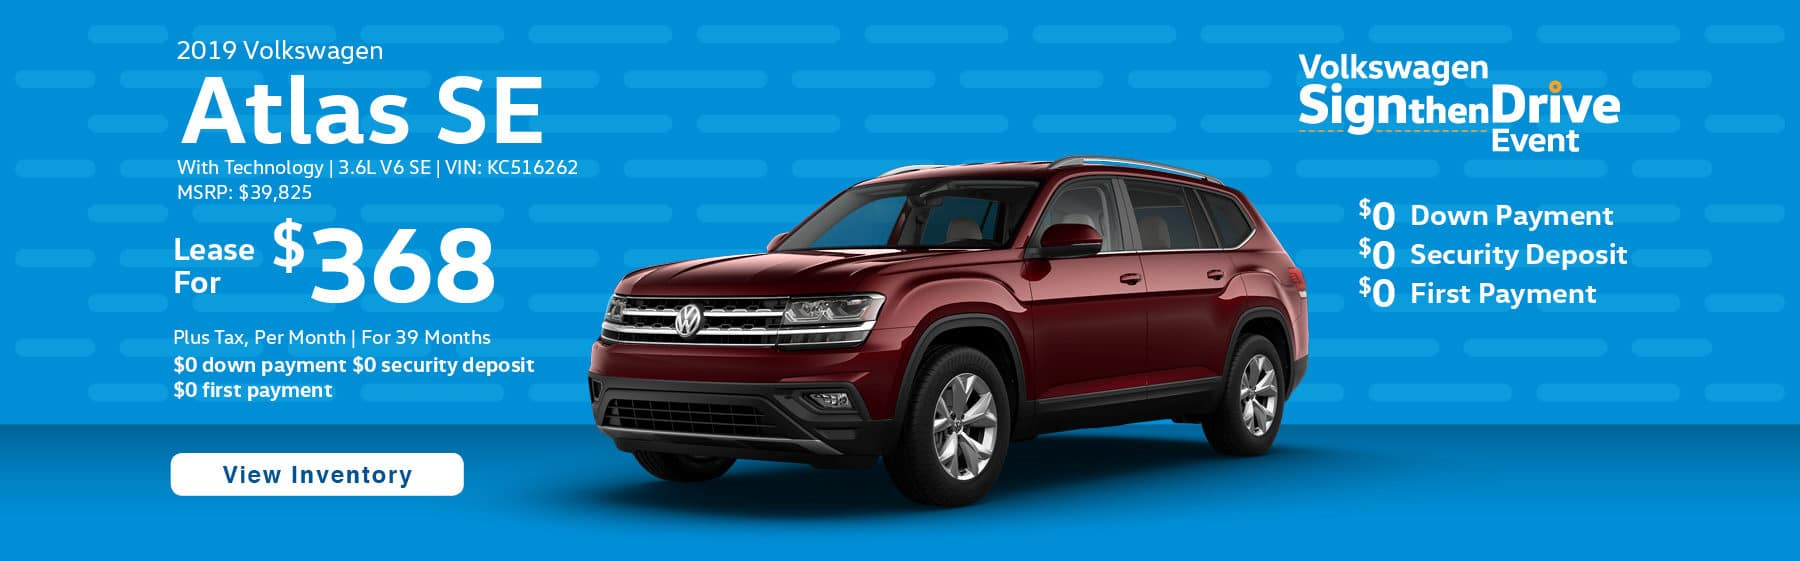 Lease the 2019 Volkswagen Atlas SE V6 for $368 plus tax for 39 months. $0 Down payment required.